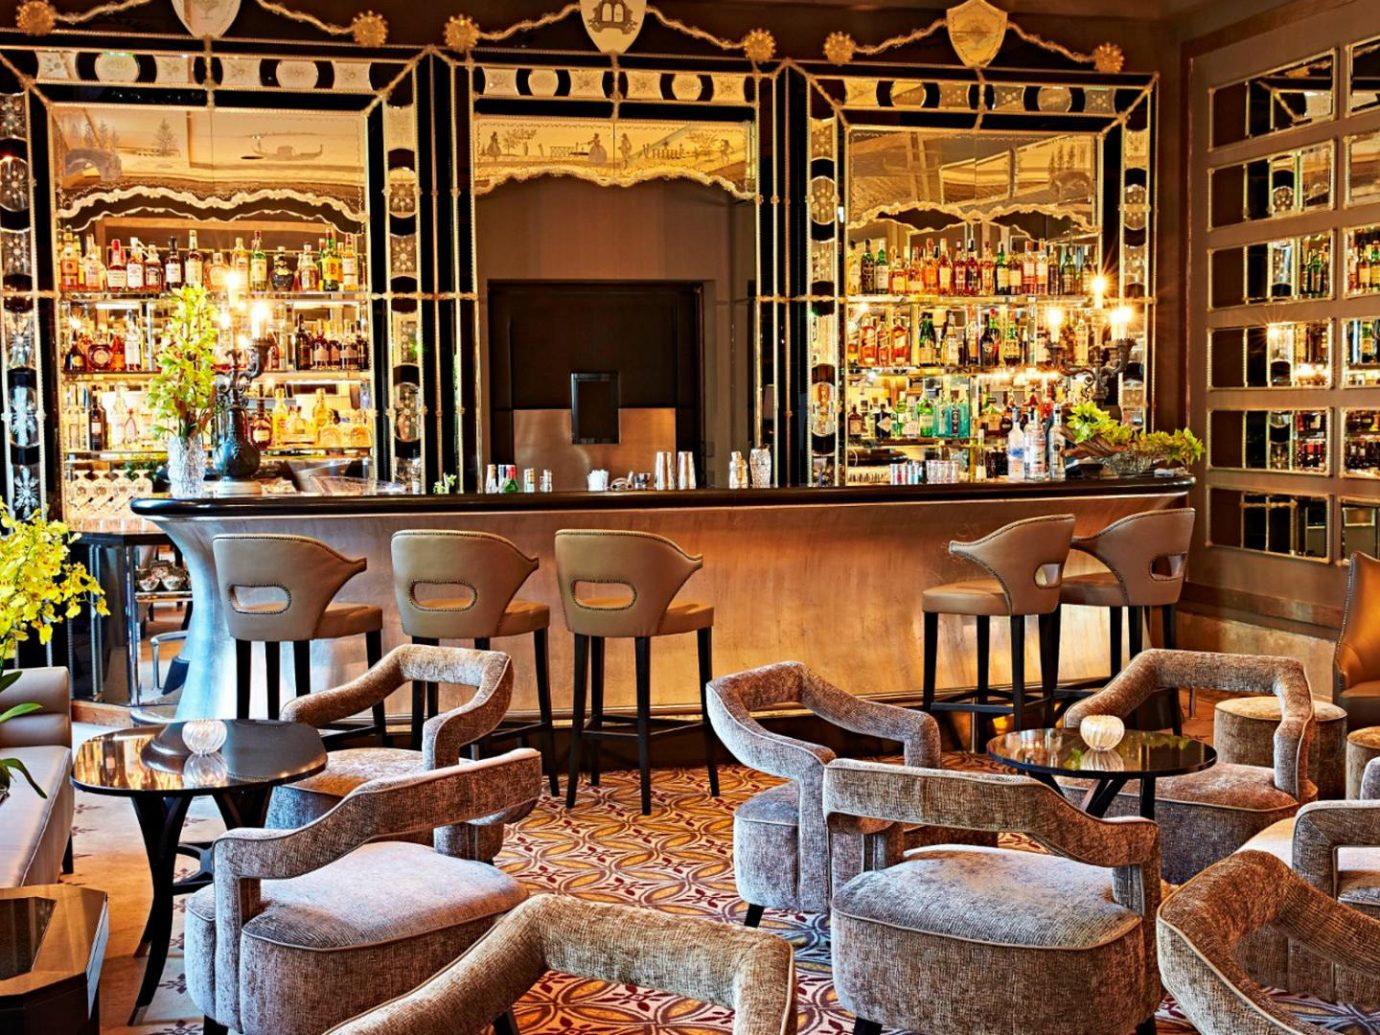 Hotels Italy Luxury Travel Venice chair Dining Bar meal restaurant interior design café estate furniture